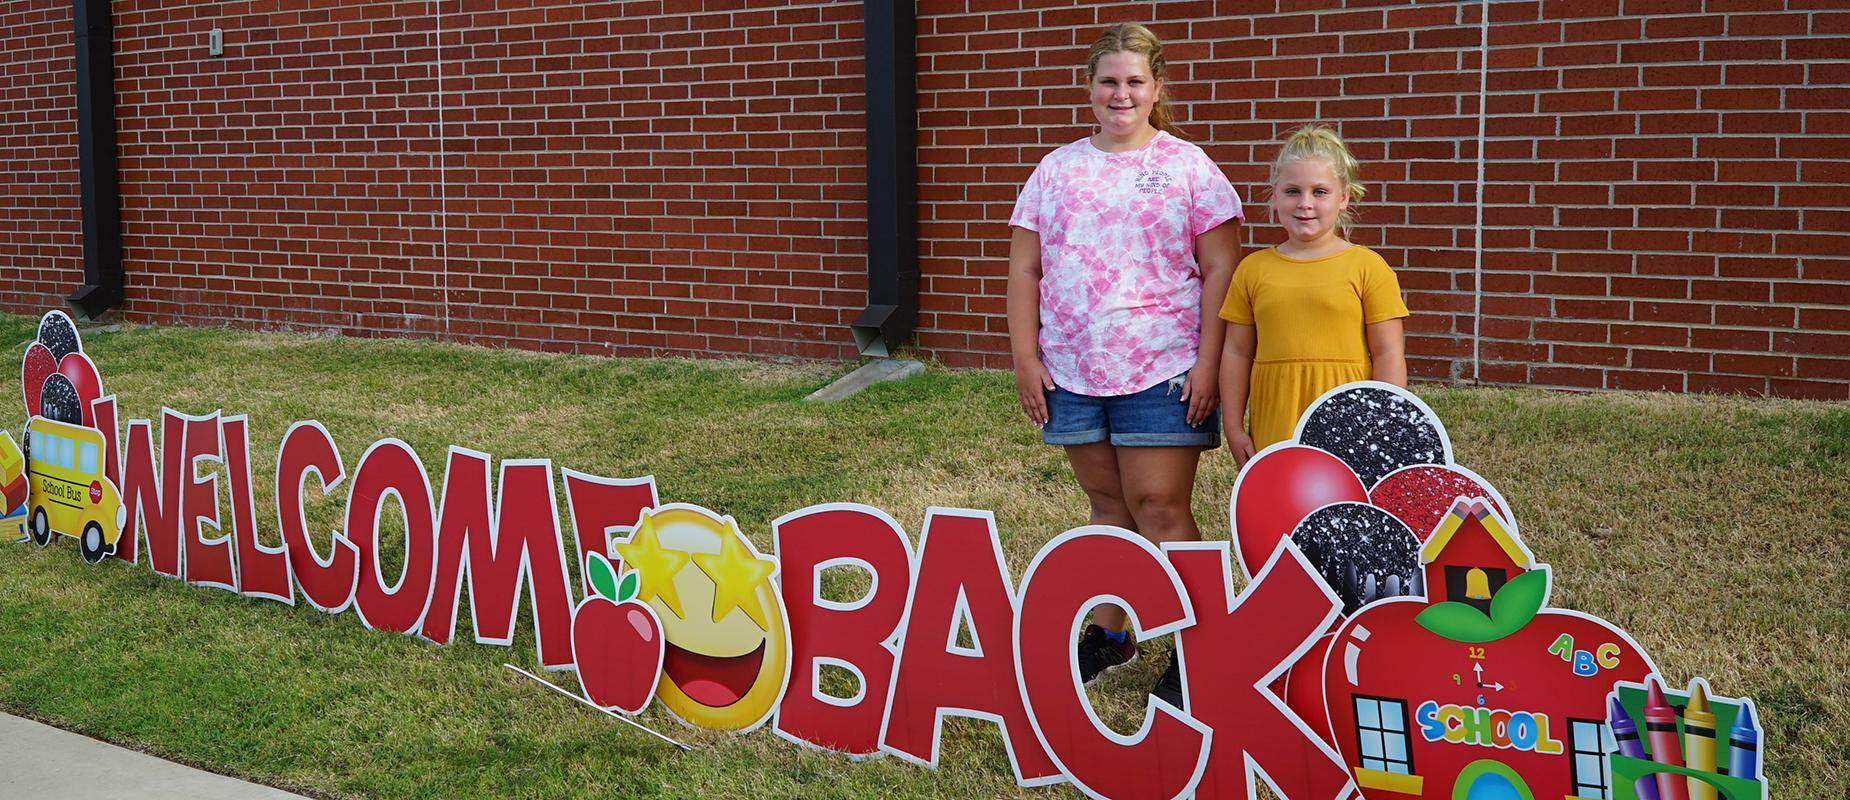 Students next to 'Welcome Back' sign